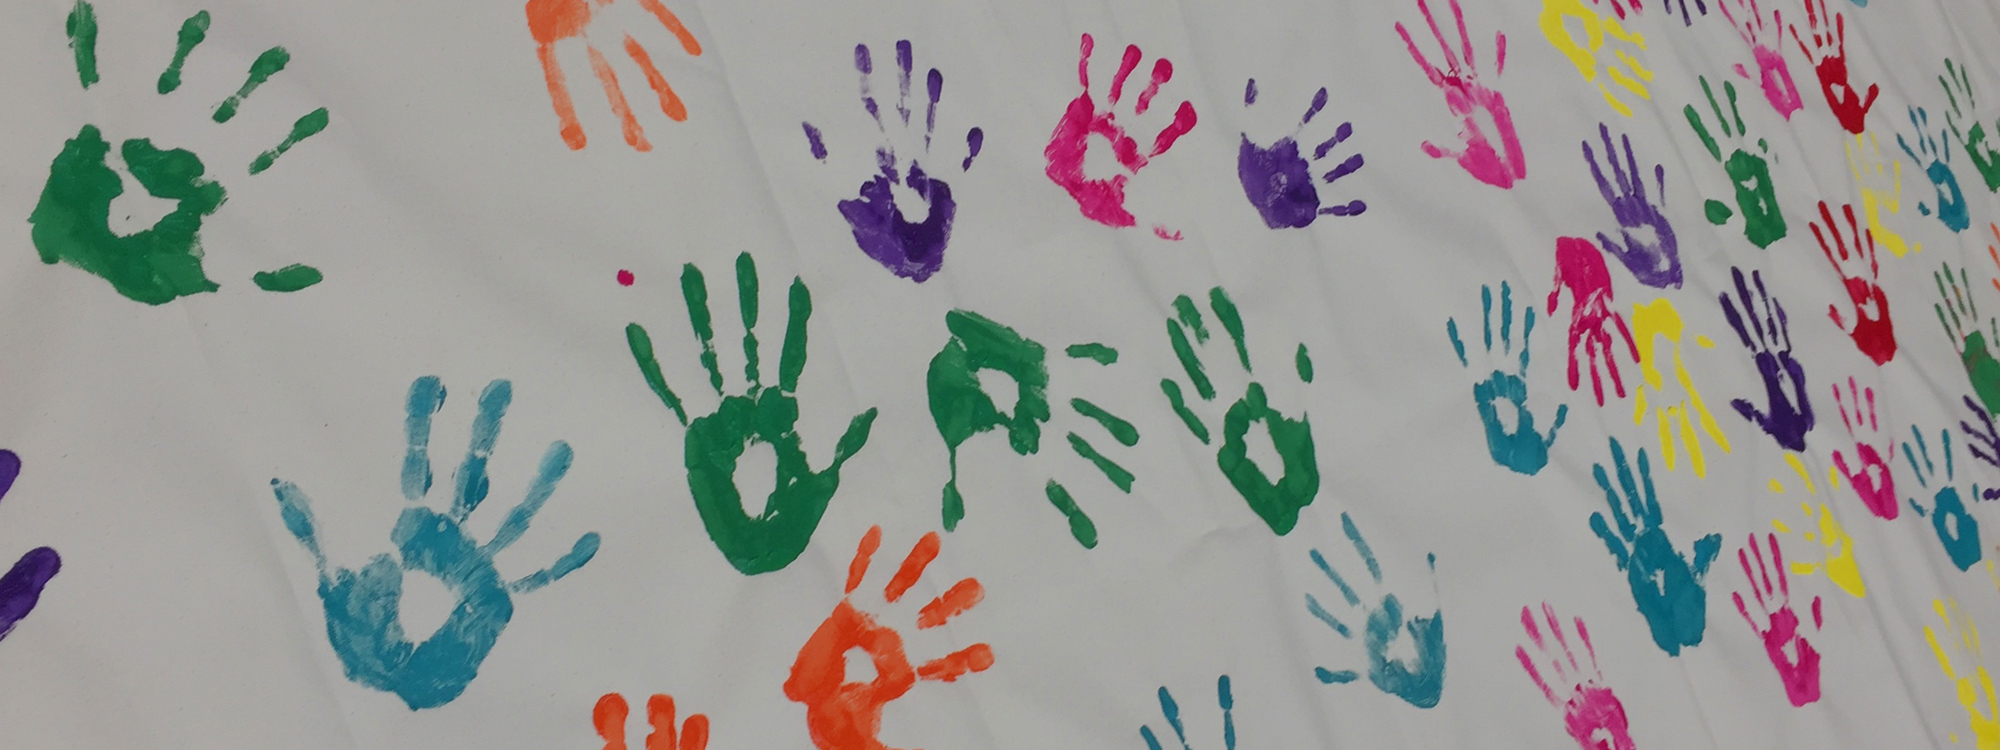 Colourful handprints on canvas